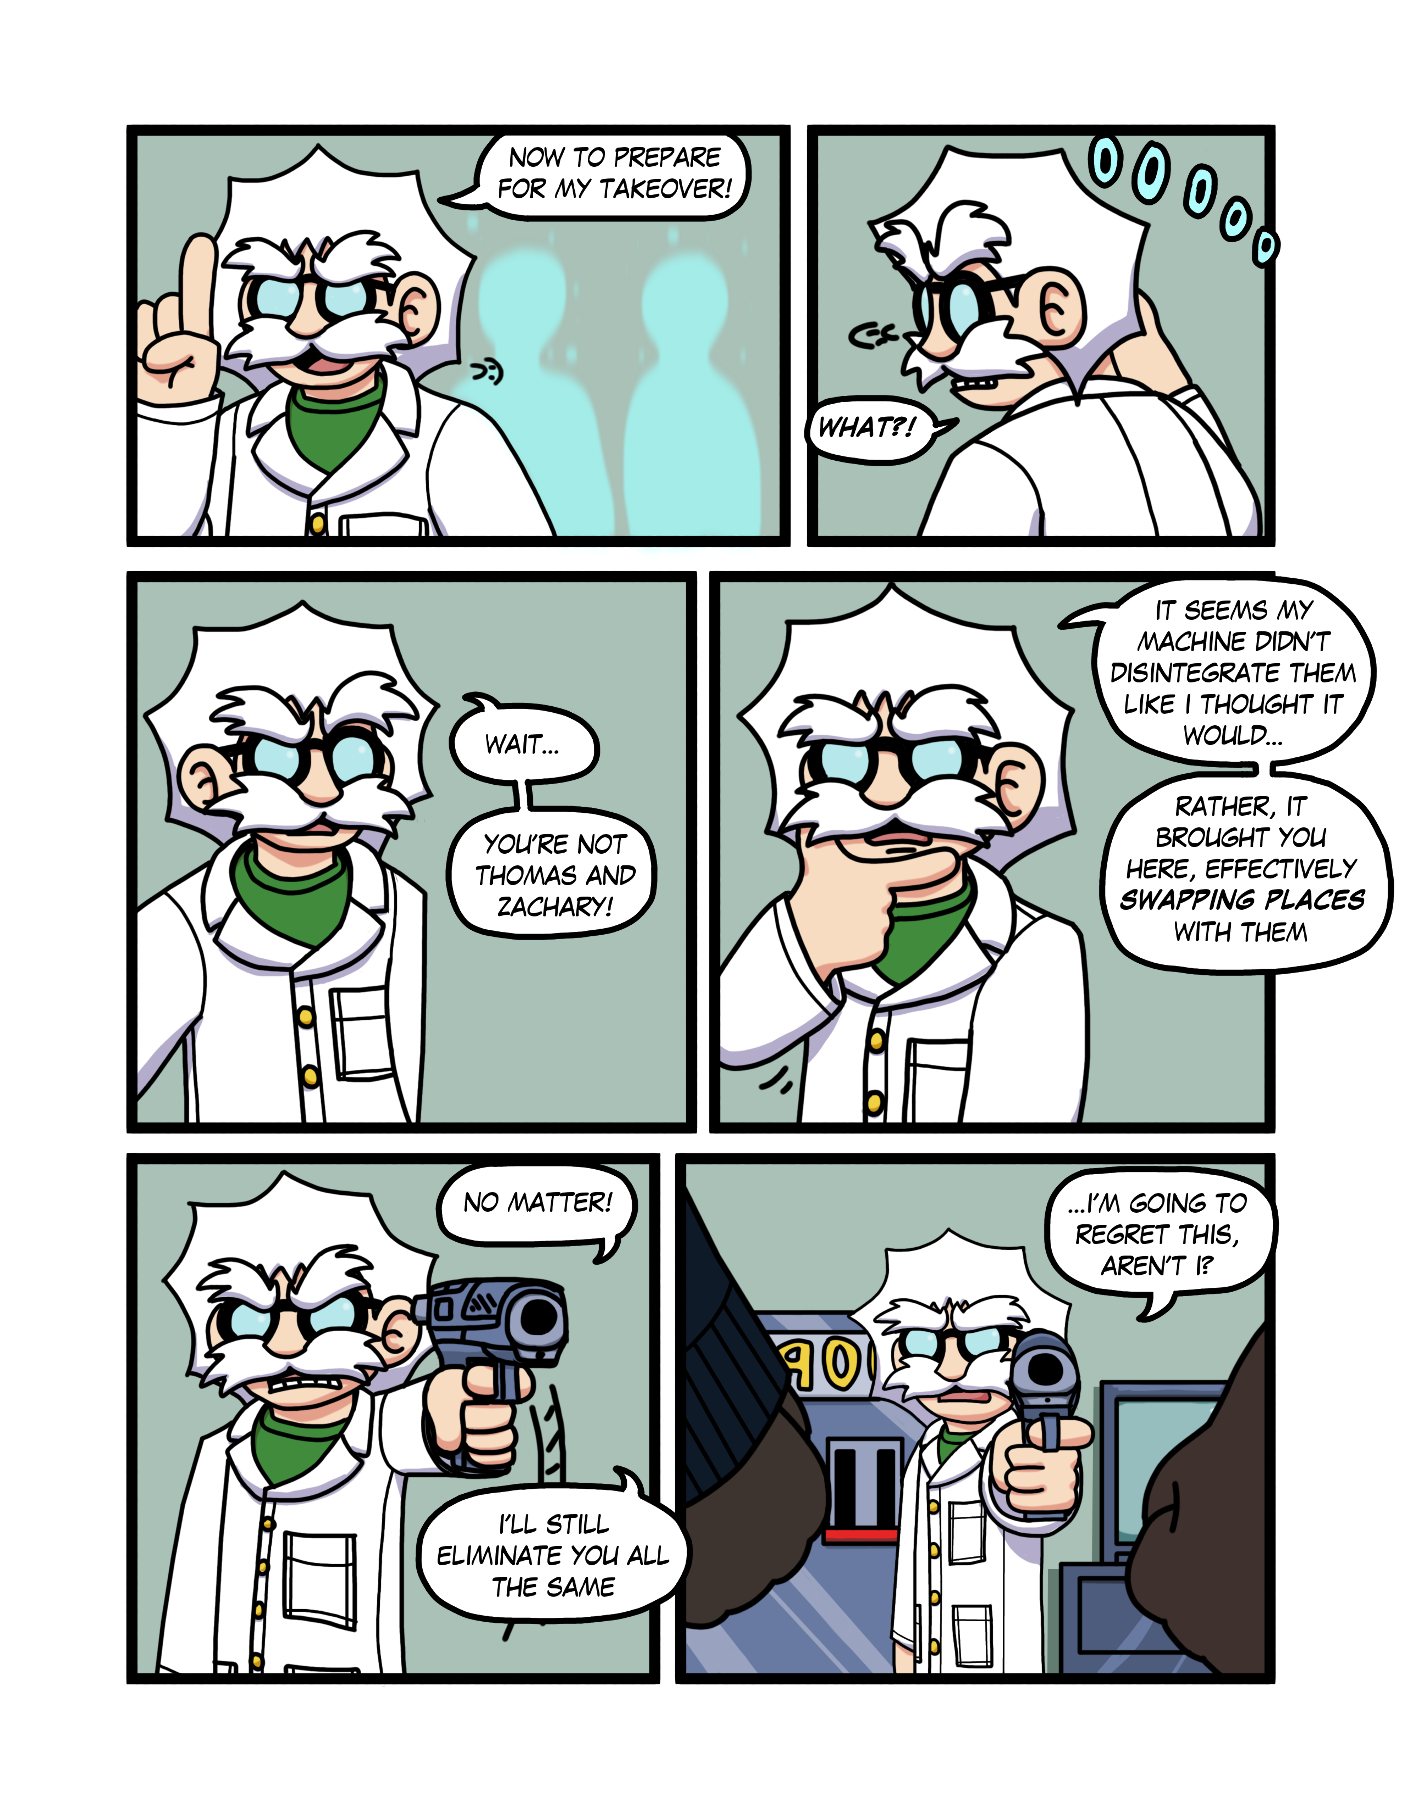 Character-Swap Exchange Intro Comic Page 2